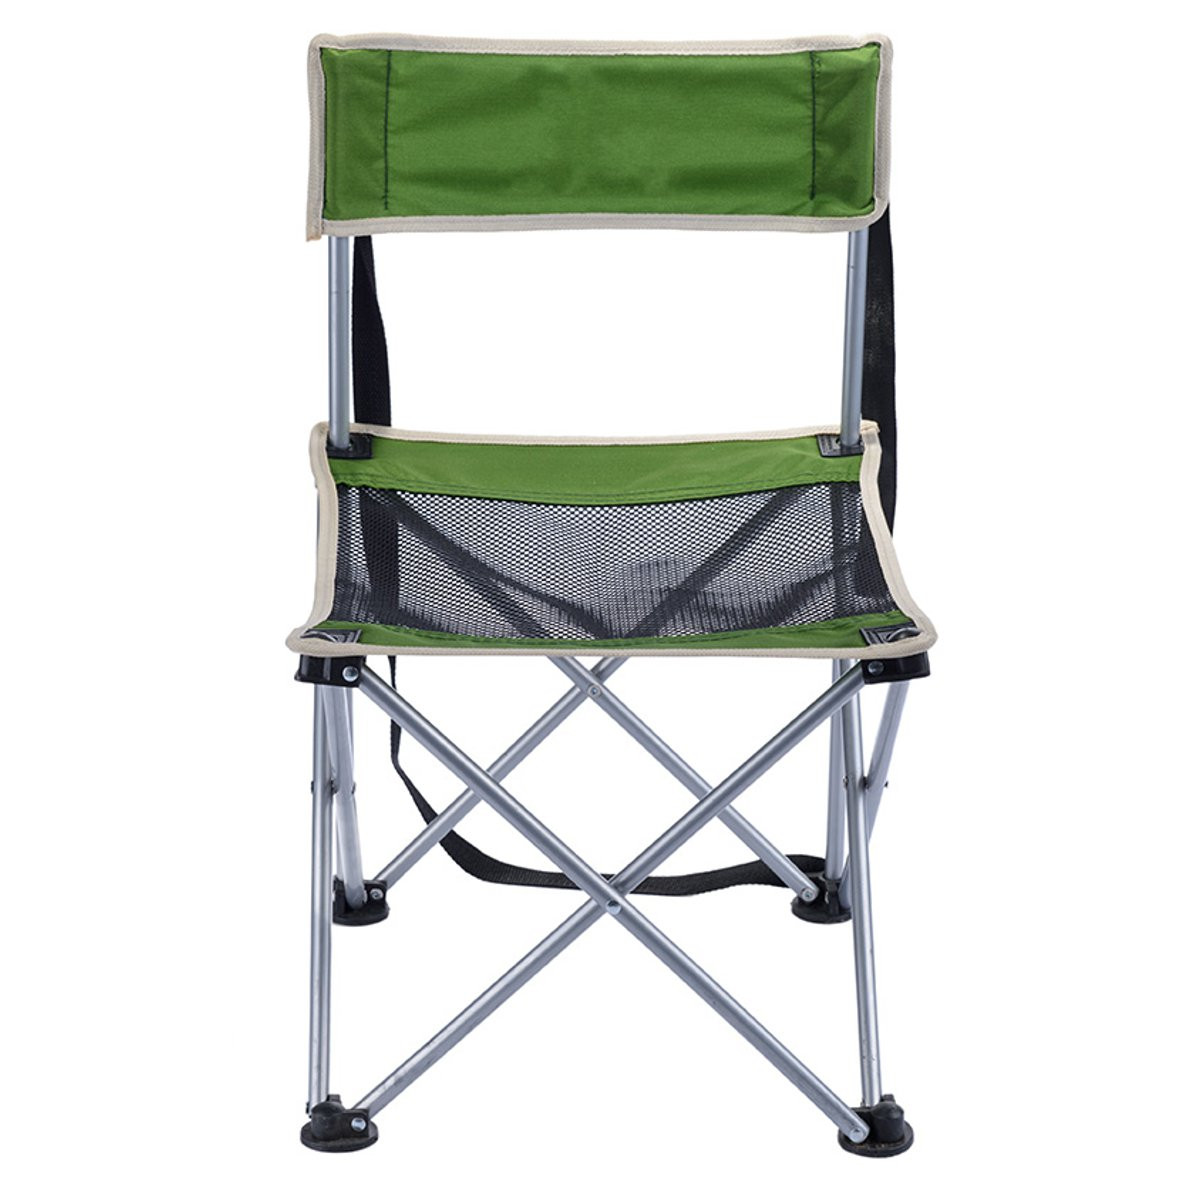 Foldable Chair Outdoor Camping Portable Folding Chair Lightweight Fishing